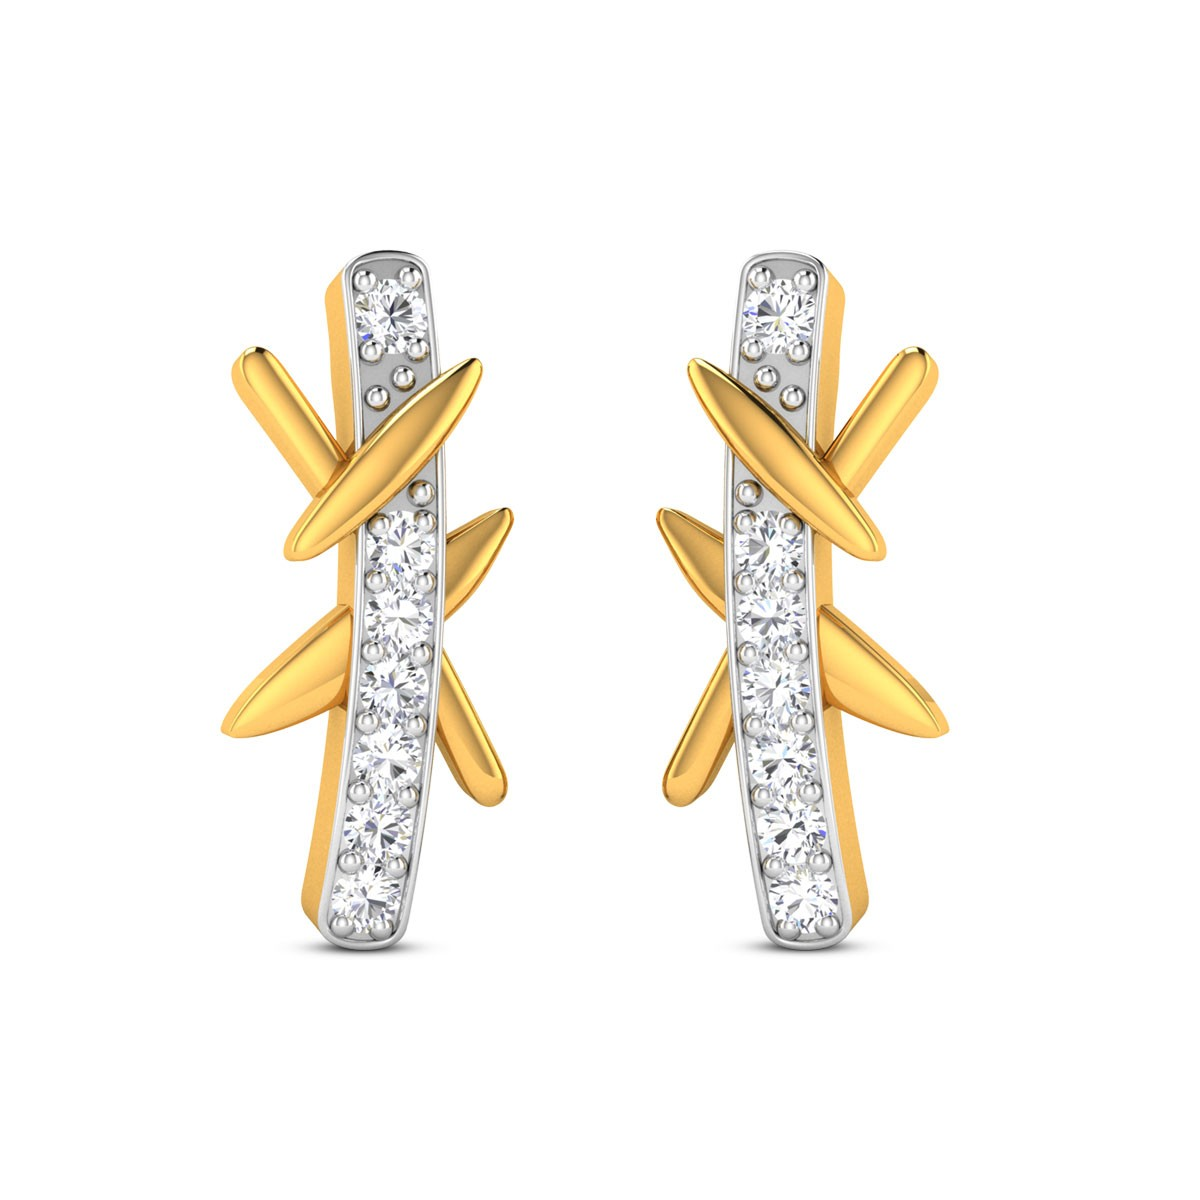 Eavan Diamond Earrings